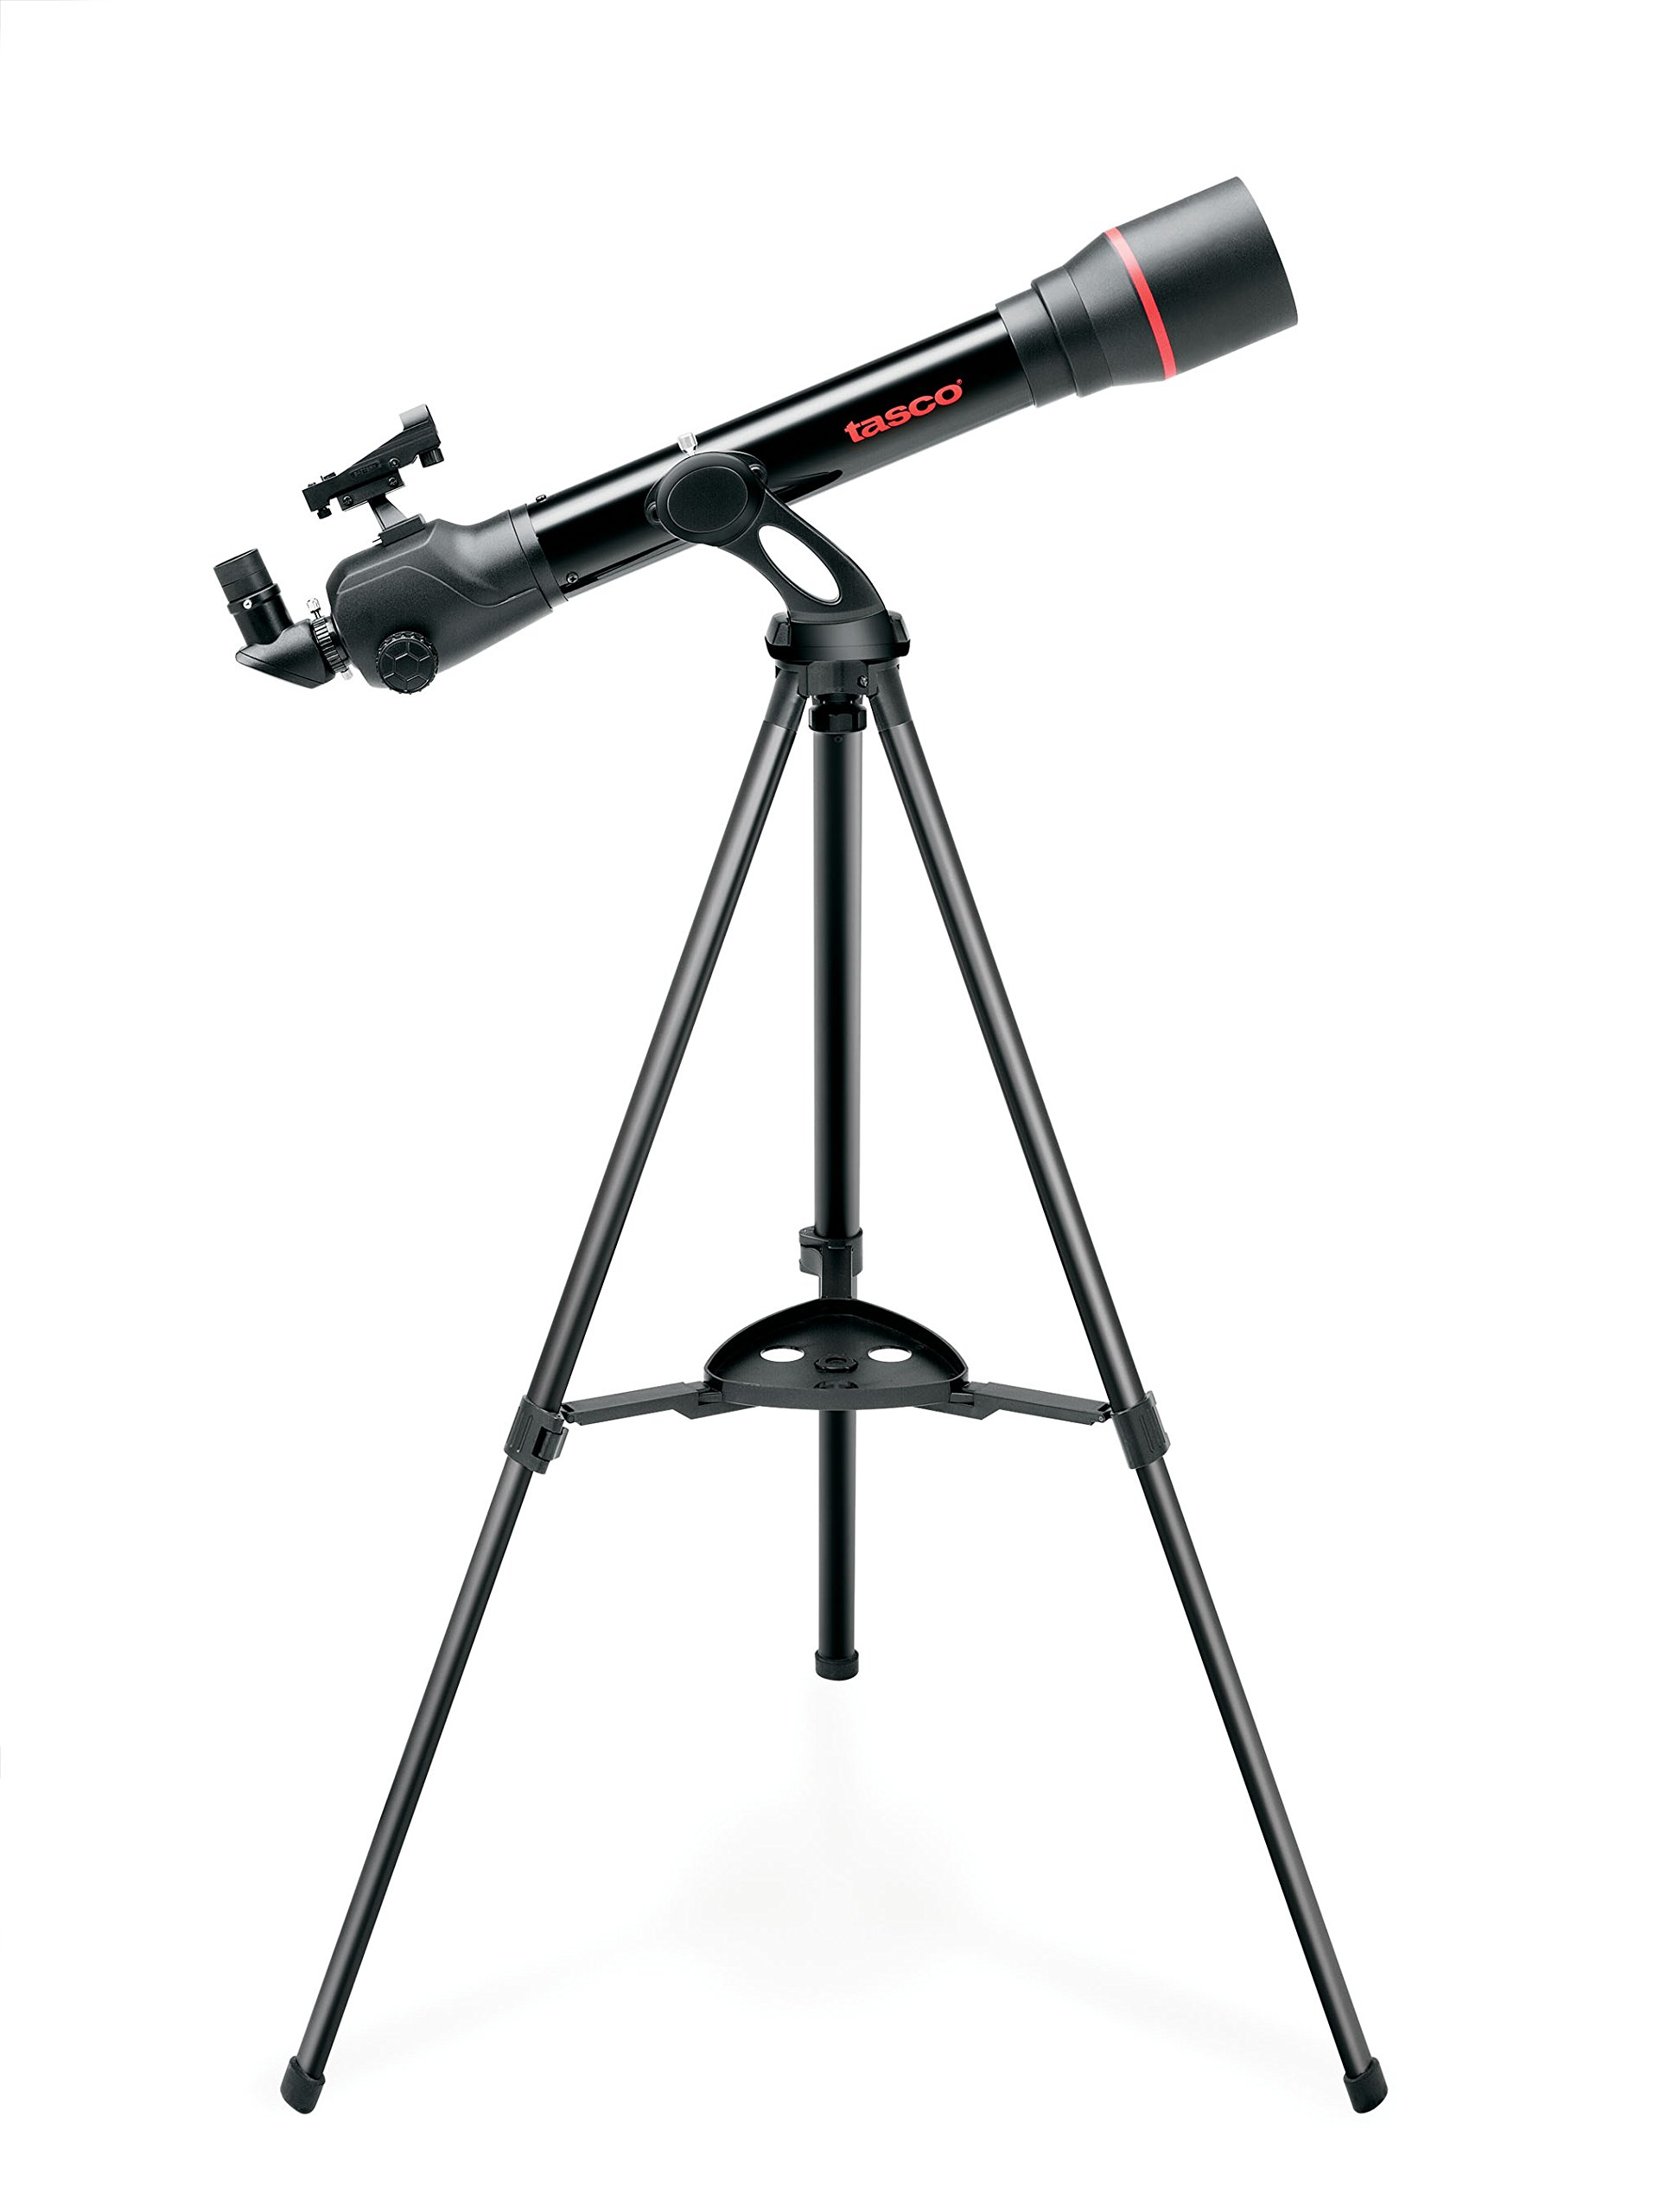 TASCO Spacestation 70x800mm Refractor AZ with Variable LED Red Dot Finderscope Telescope by TASCO